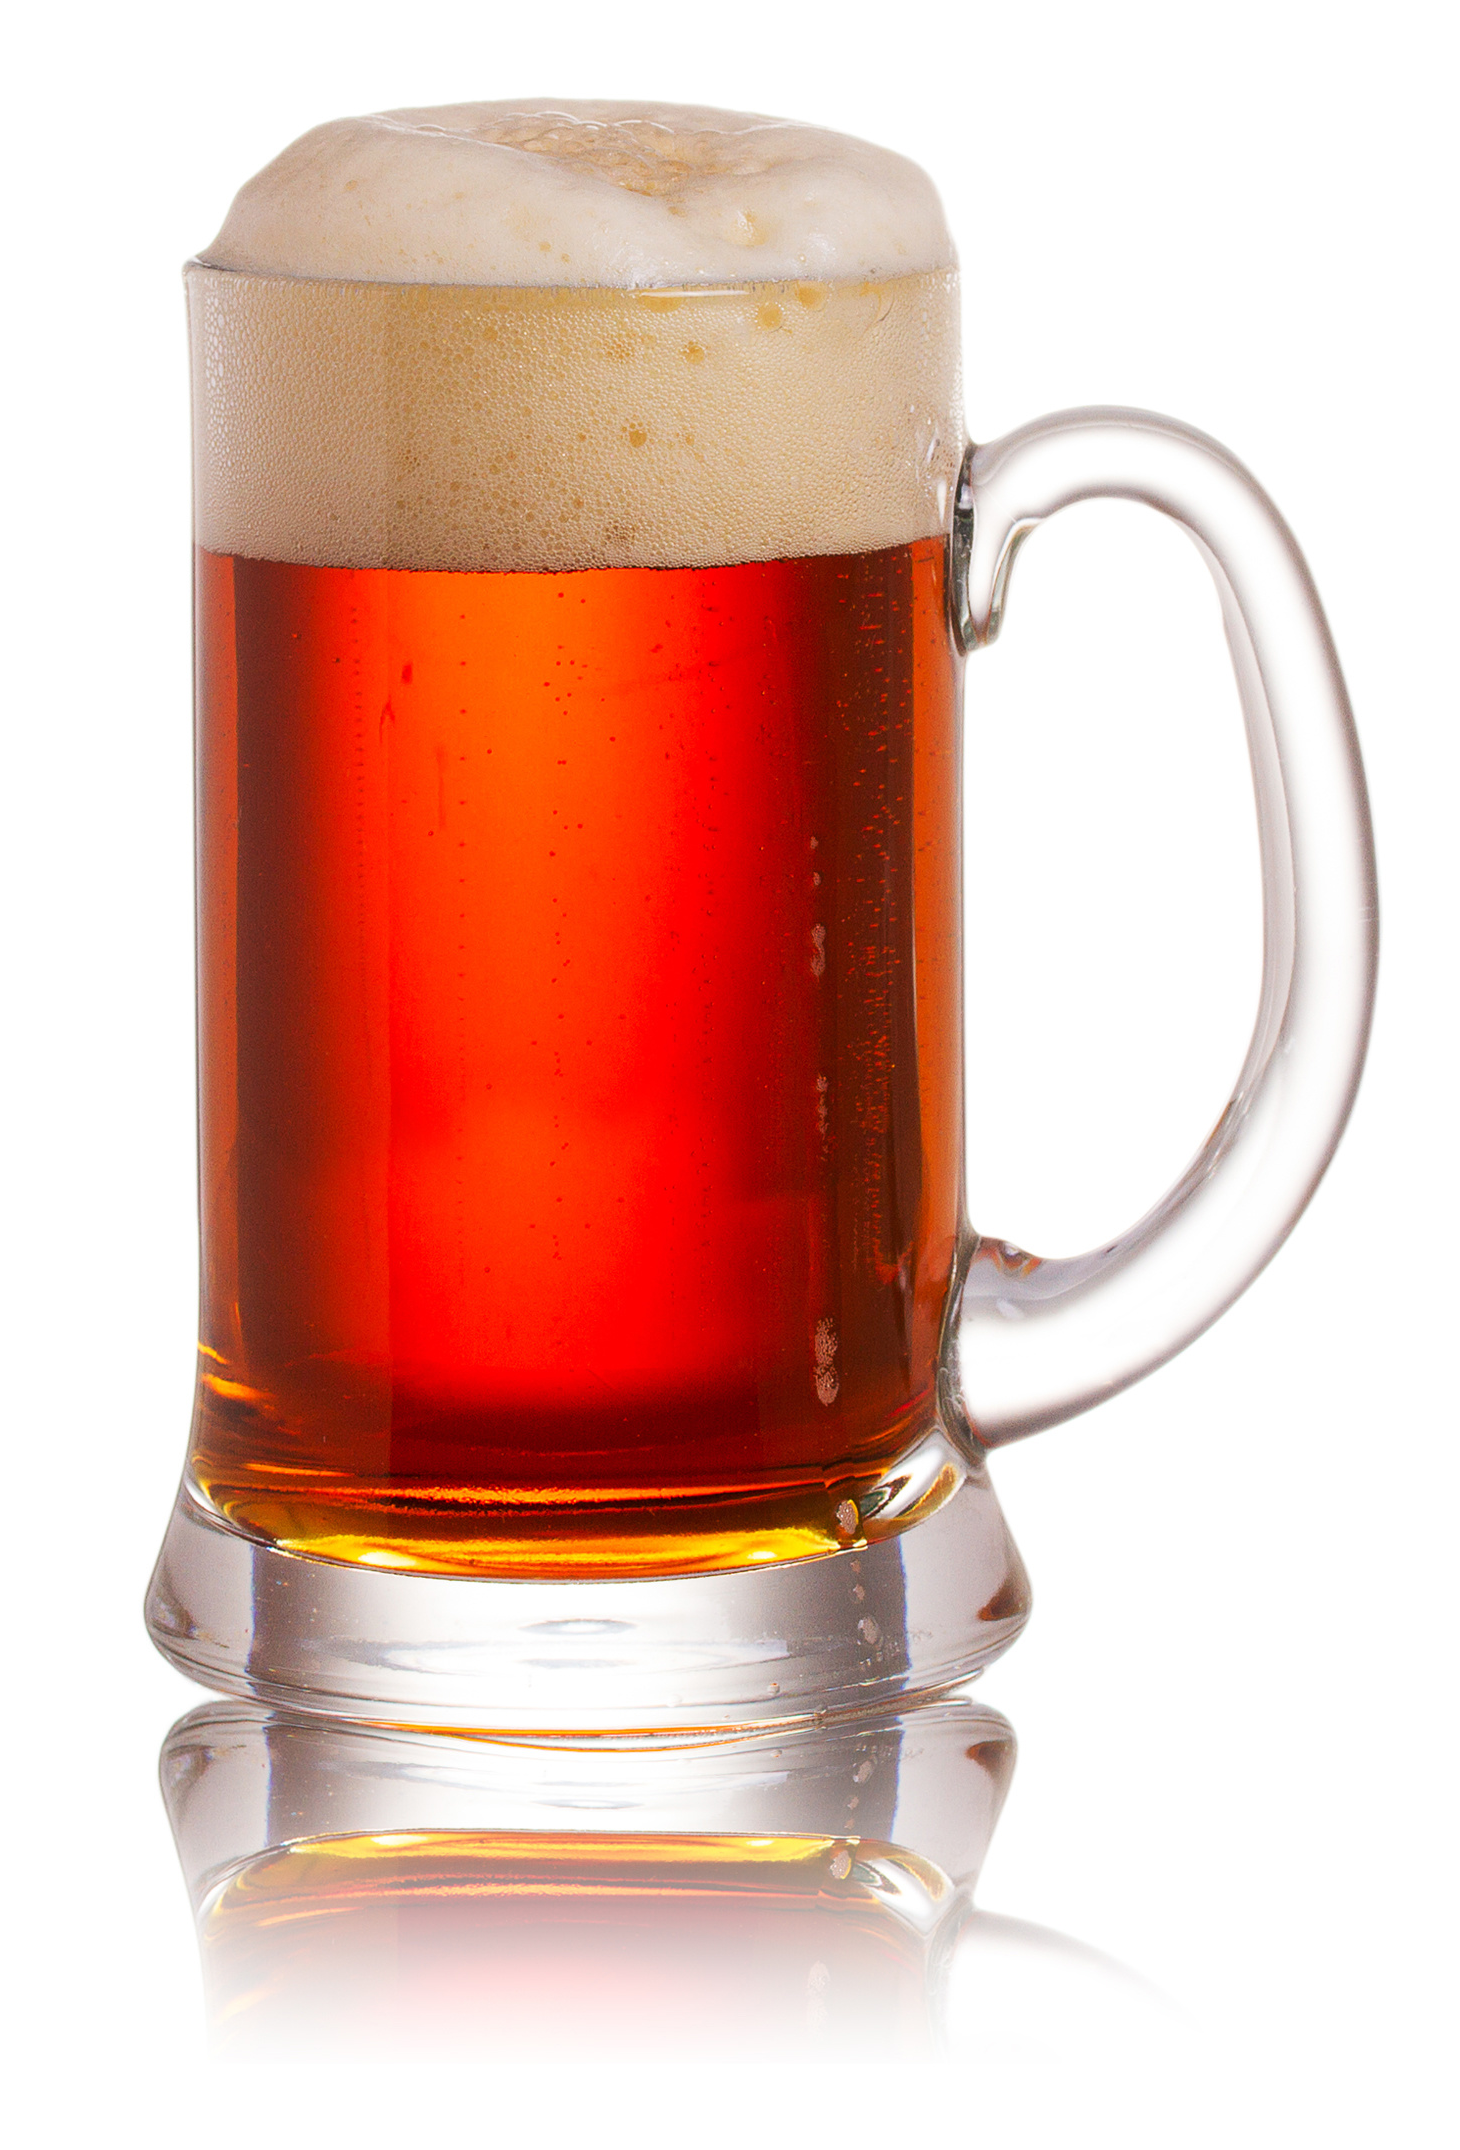 https://cervezasvandalia.com/wp-content/uploads/2019/06/Red.png